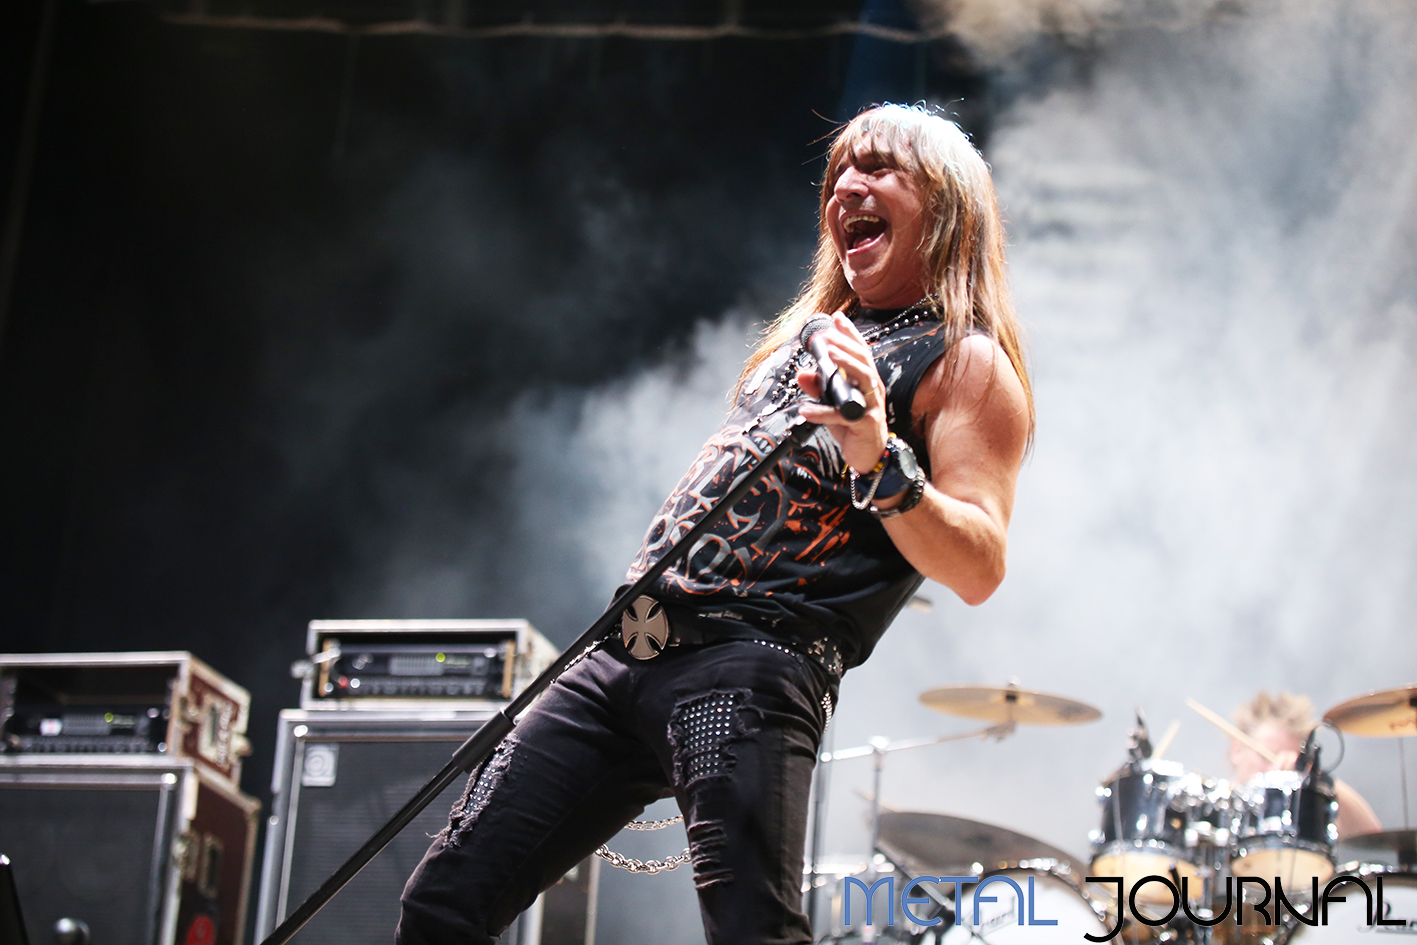 rata blanca - leyendas del rock 2019 metal journal pic 1